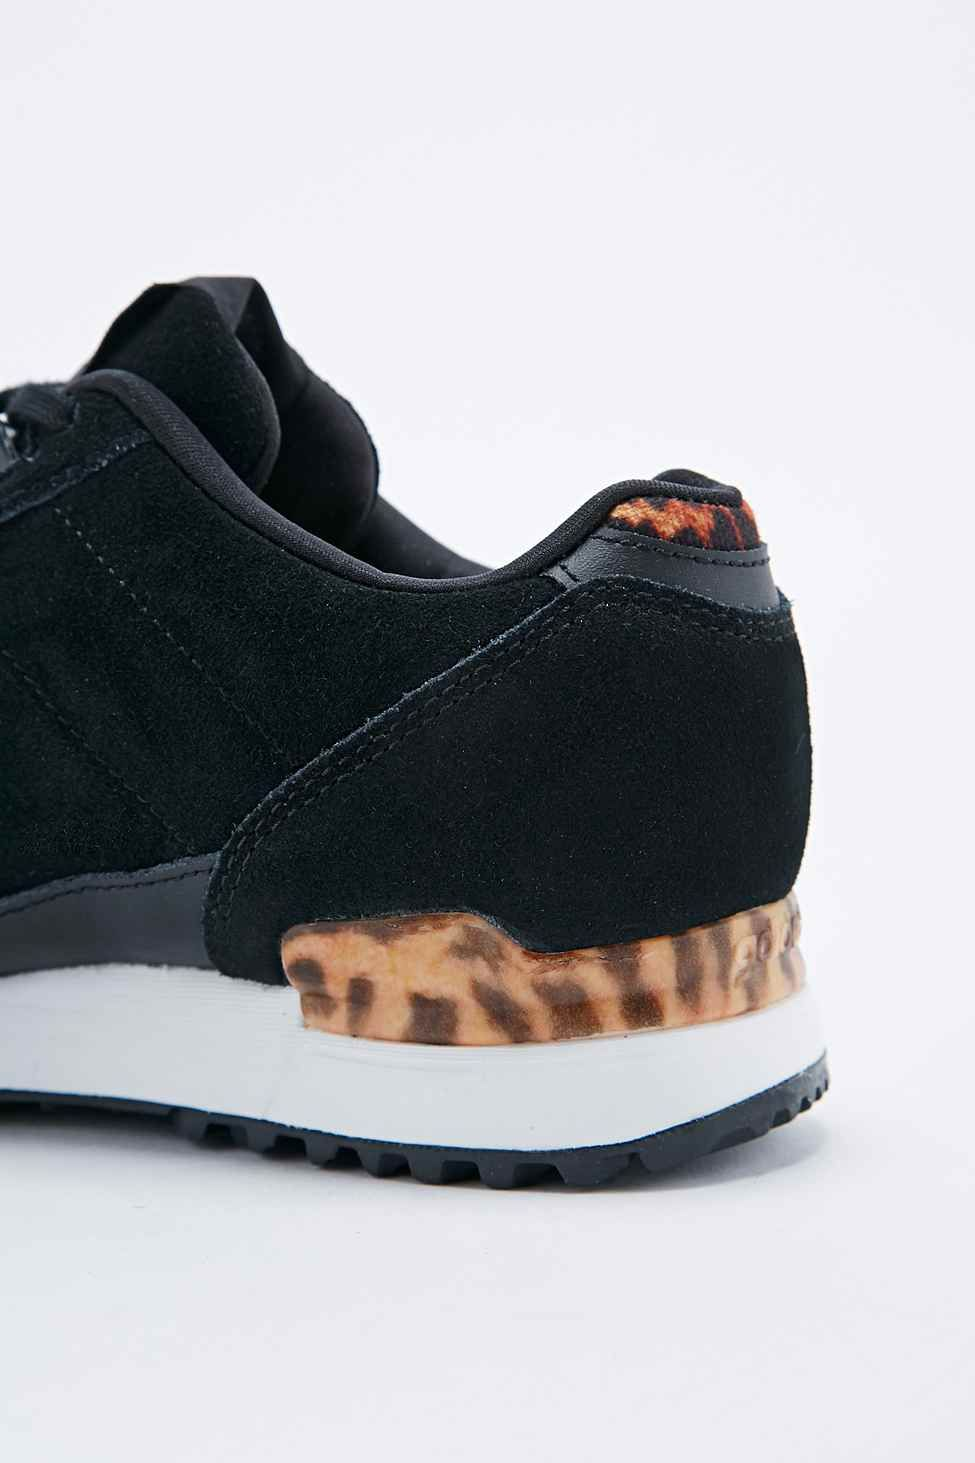 7fa2c1145d08 adidas ZX 700 Trainers in Leopard Print and Black